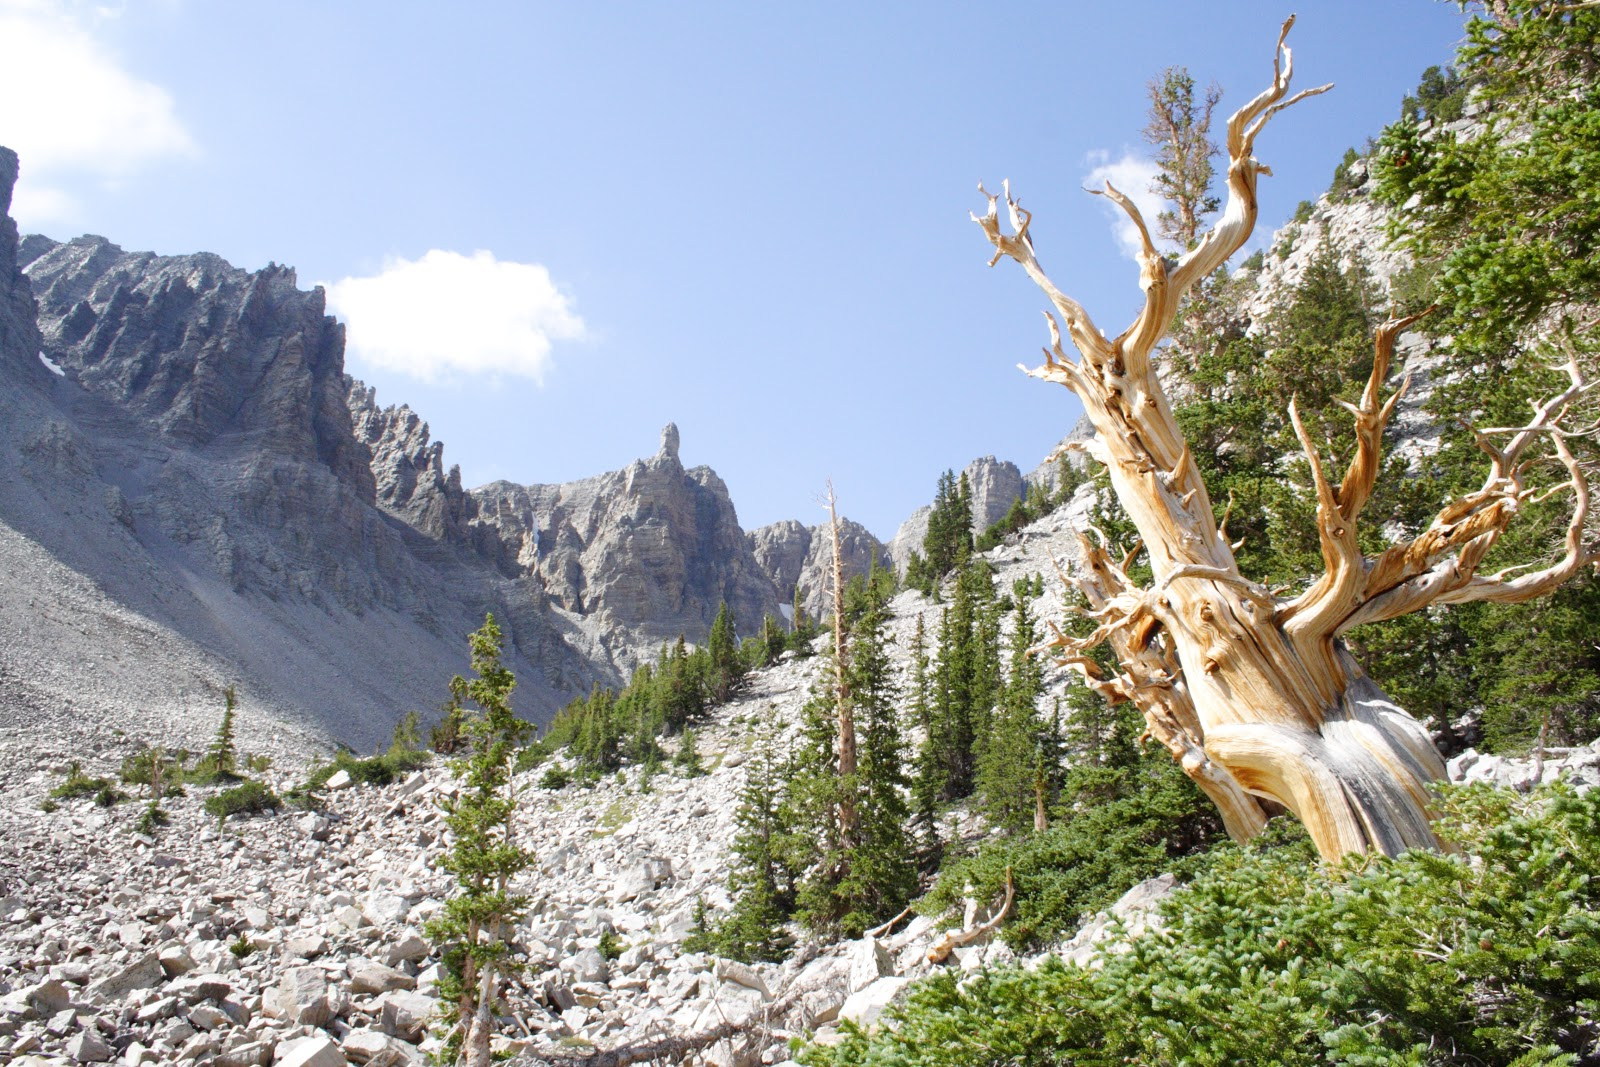 Matt 39 s photo blog great basin national park bristlecone pine grove - Pinne dive system ...